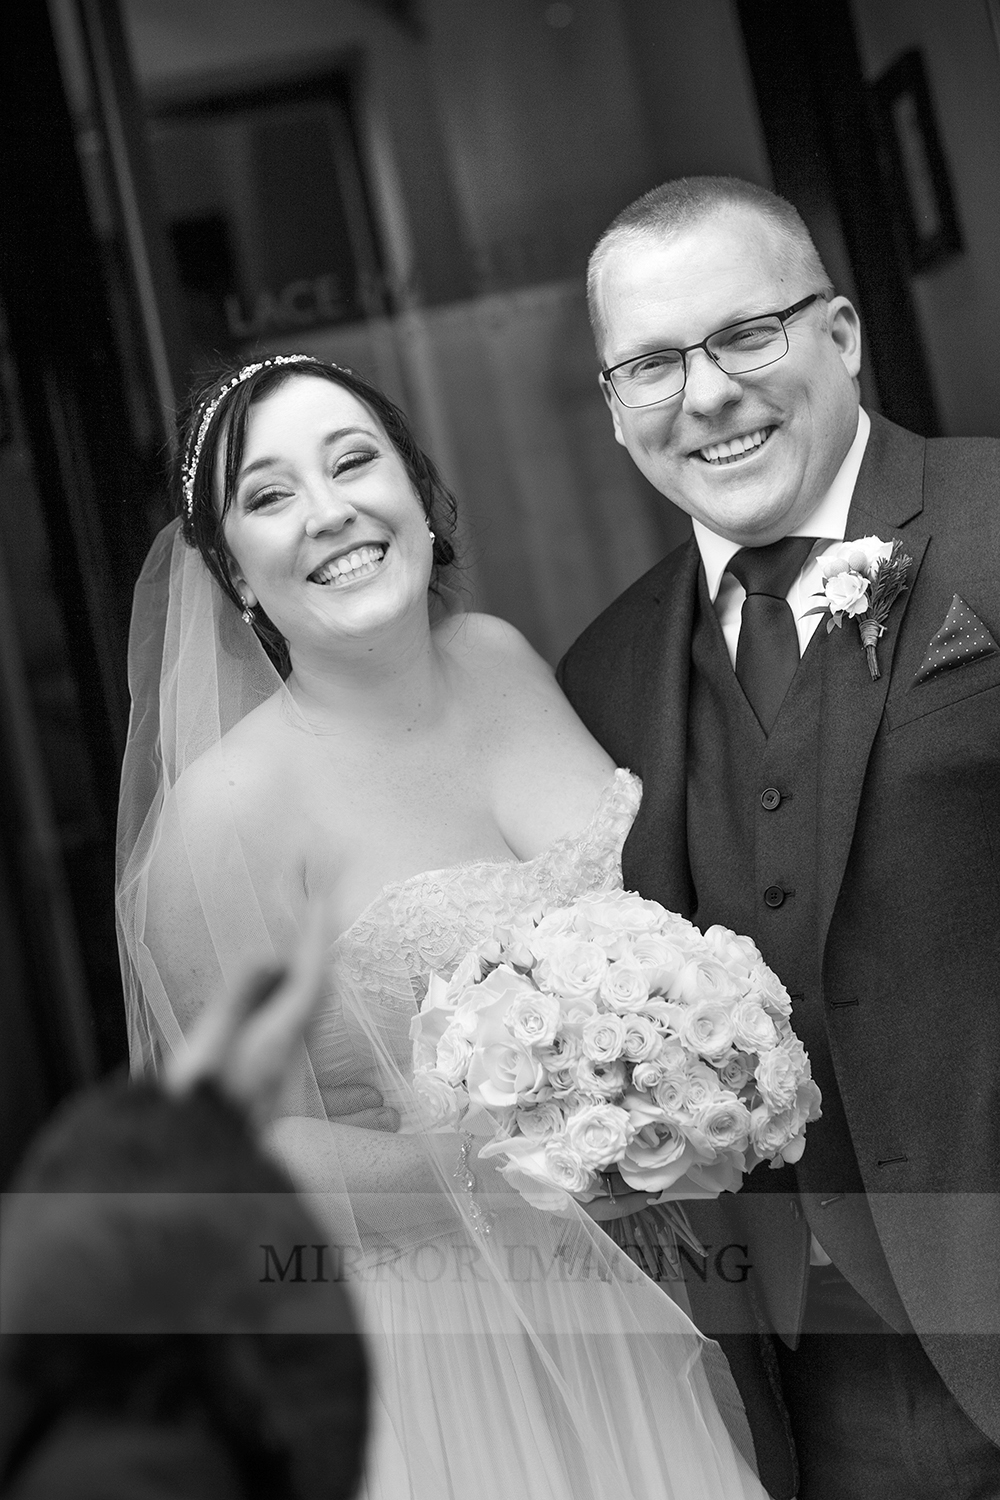 nottingham wedding photographers 32.jpg